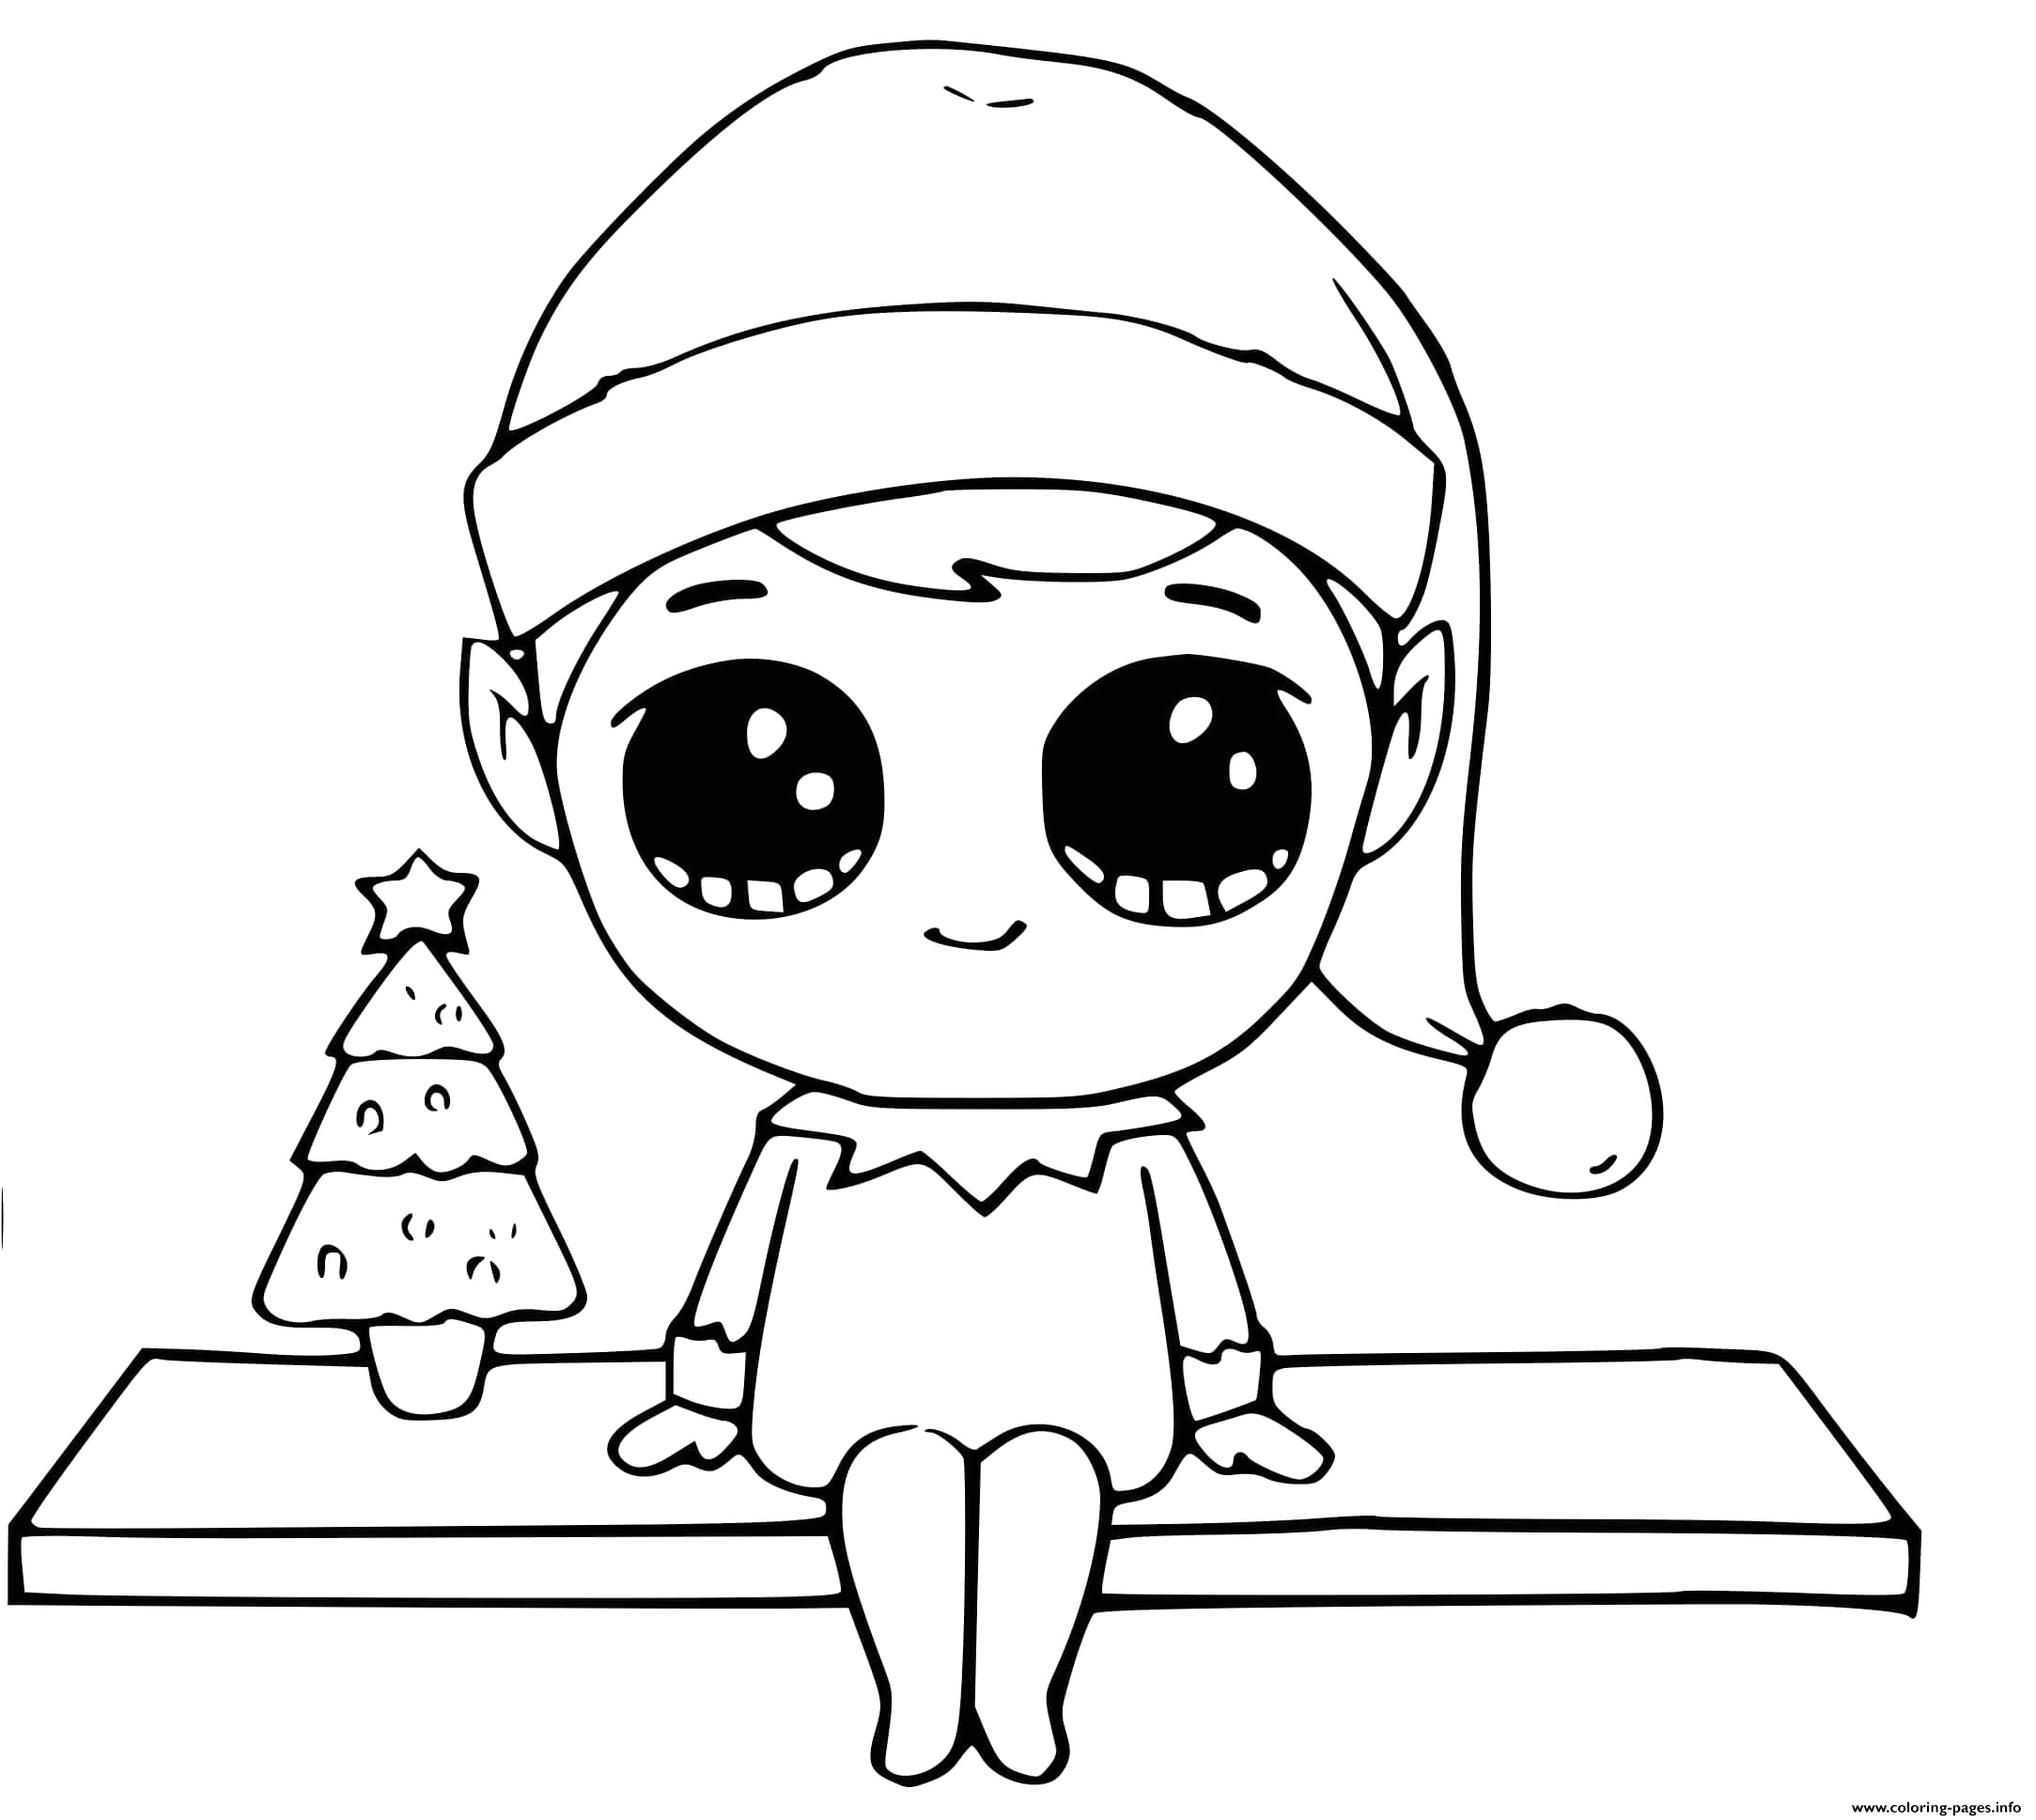 elf on the shelf easy printable coloring pages book